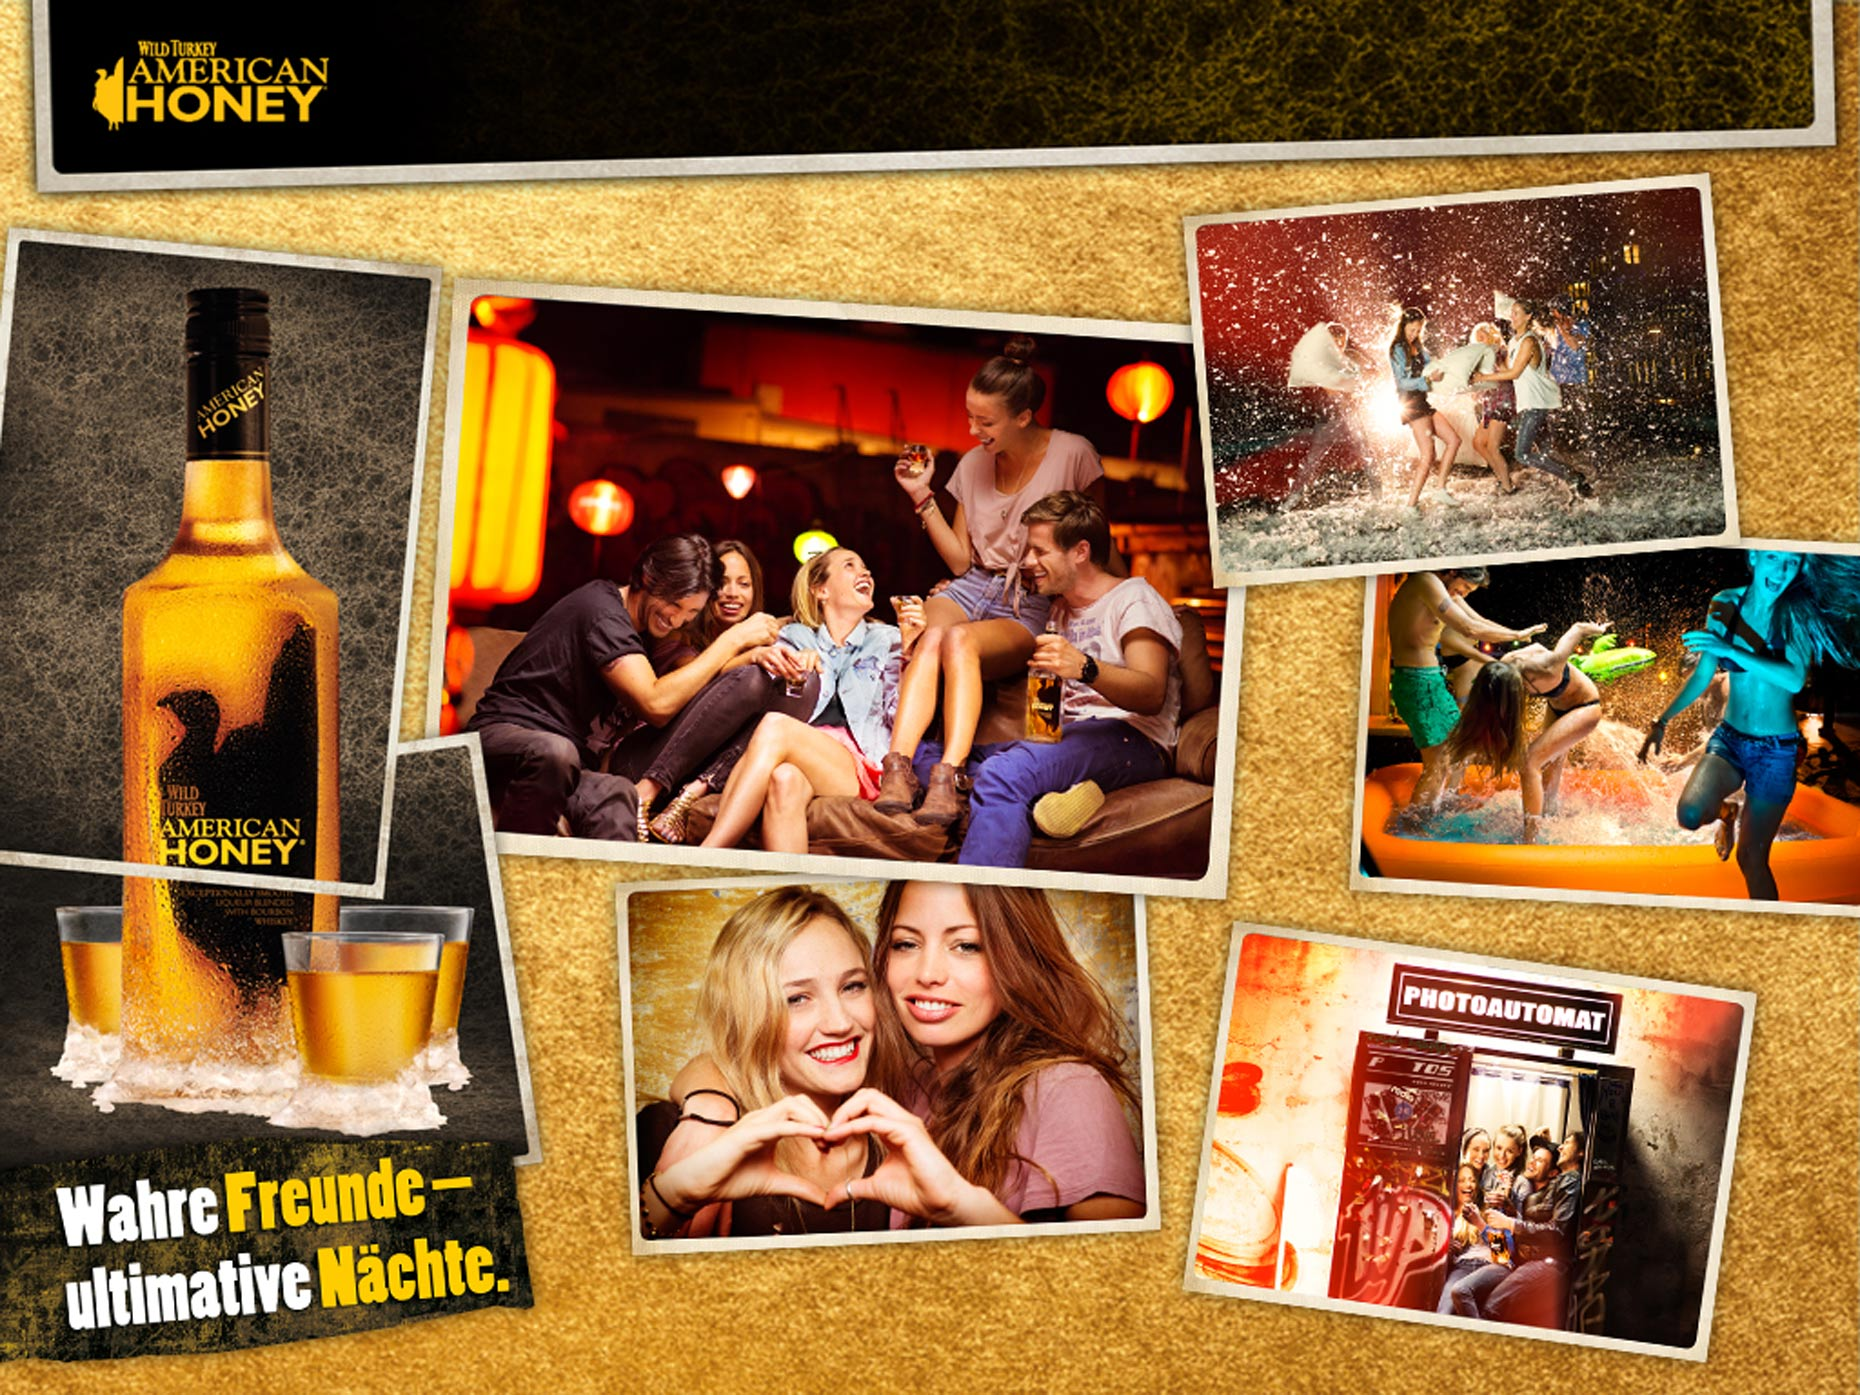 web_Campari_American_Honey_0000_1.jpg